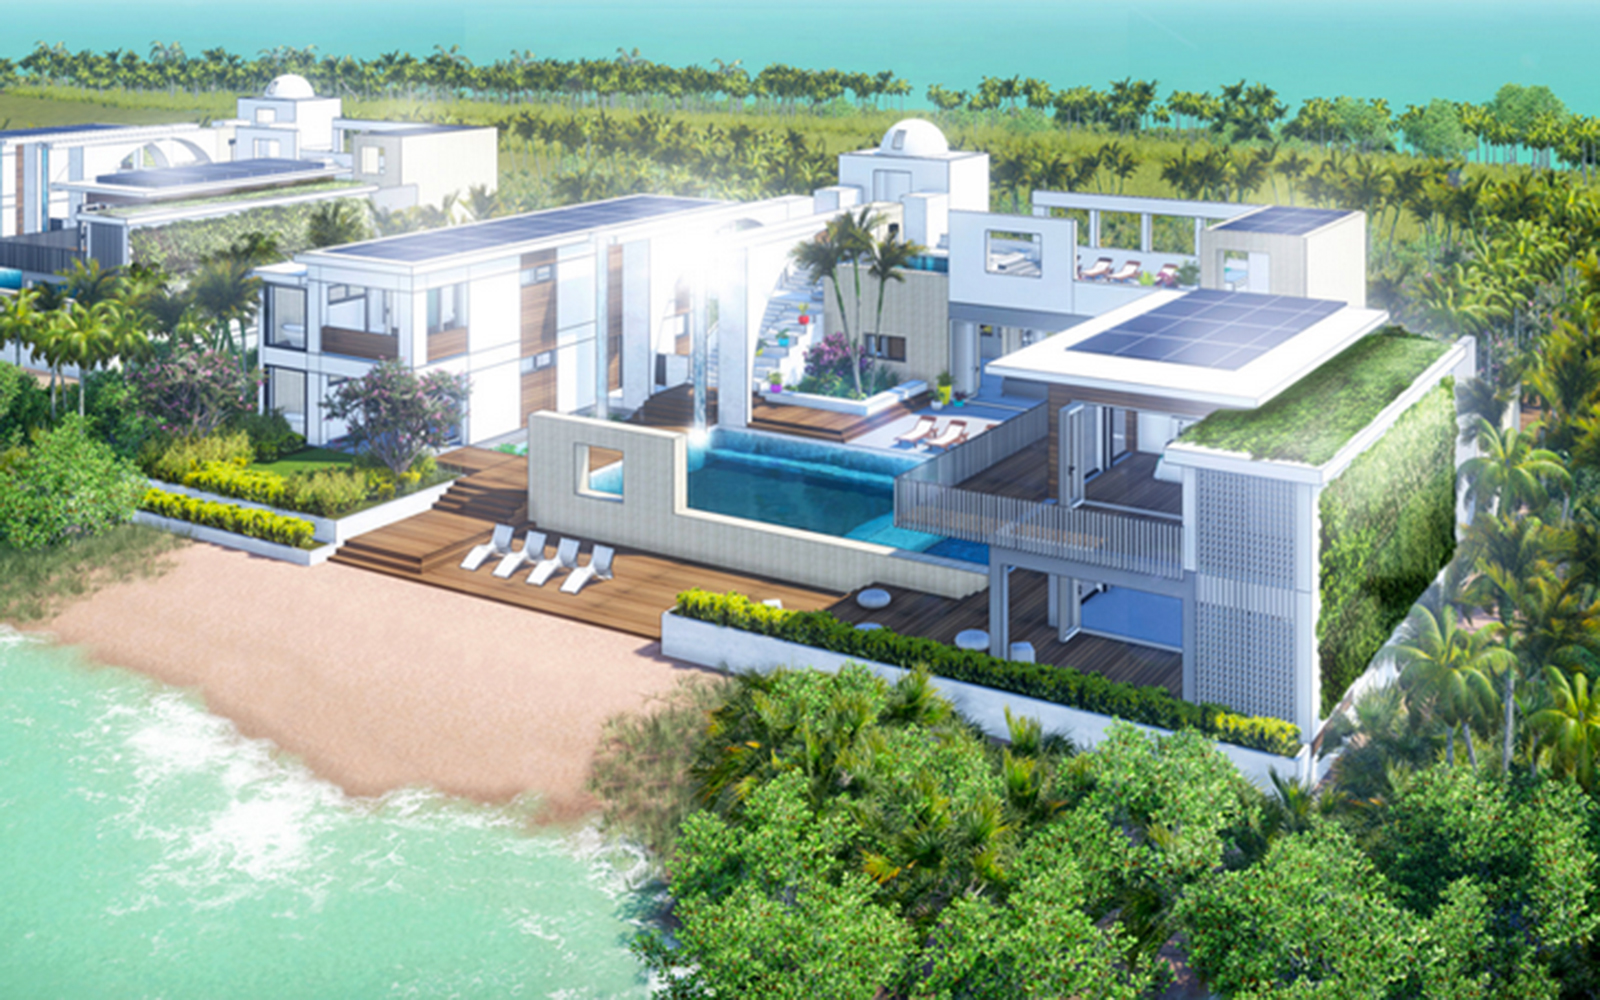 Leonardo DiCaprio is Turning His Private Island into an Eco-Resort